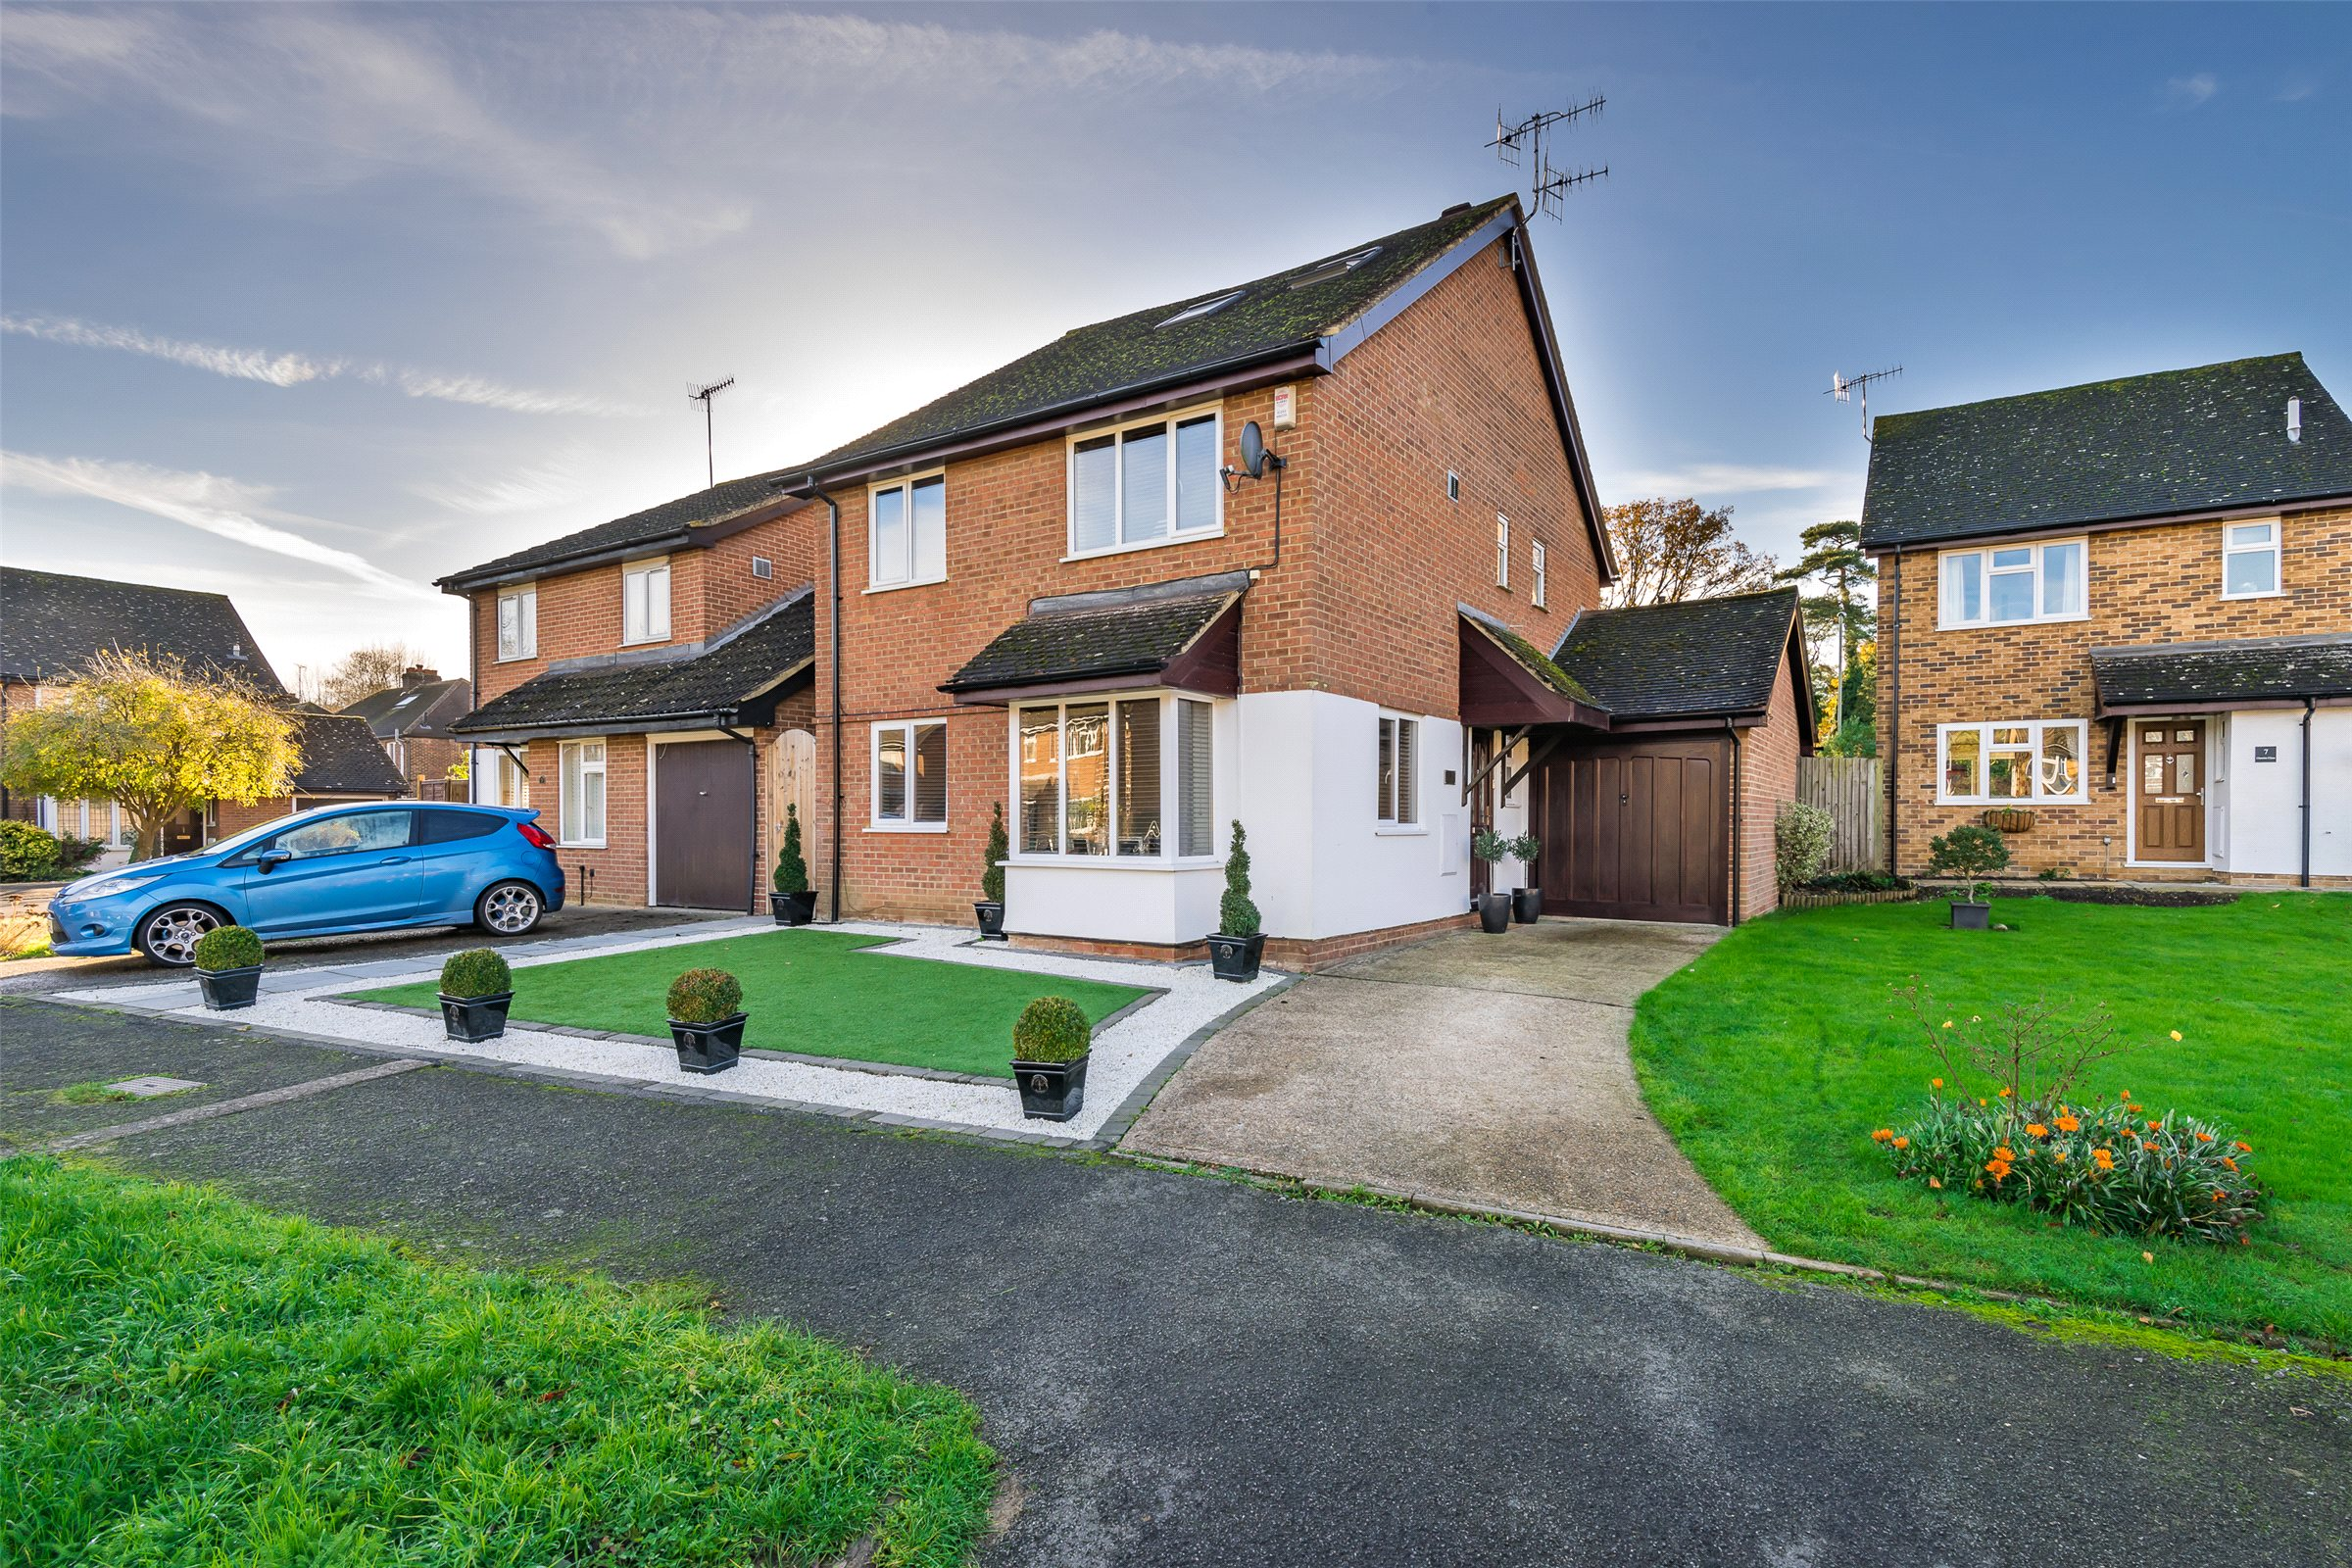 5 Bedrooms Detached House for sale in Chatelet Close, Horley, Surrey, RH6